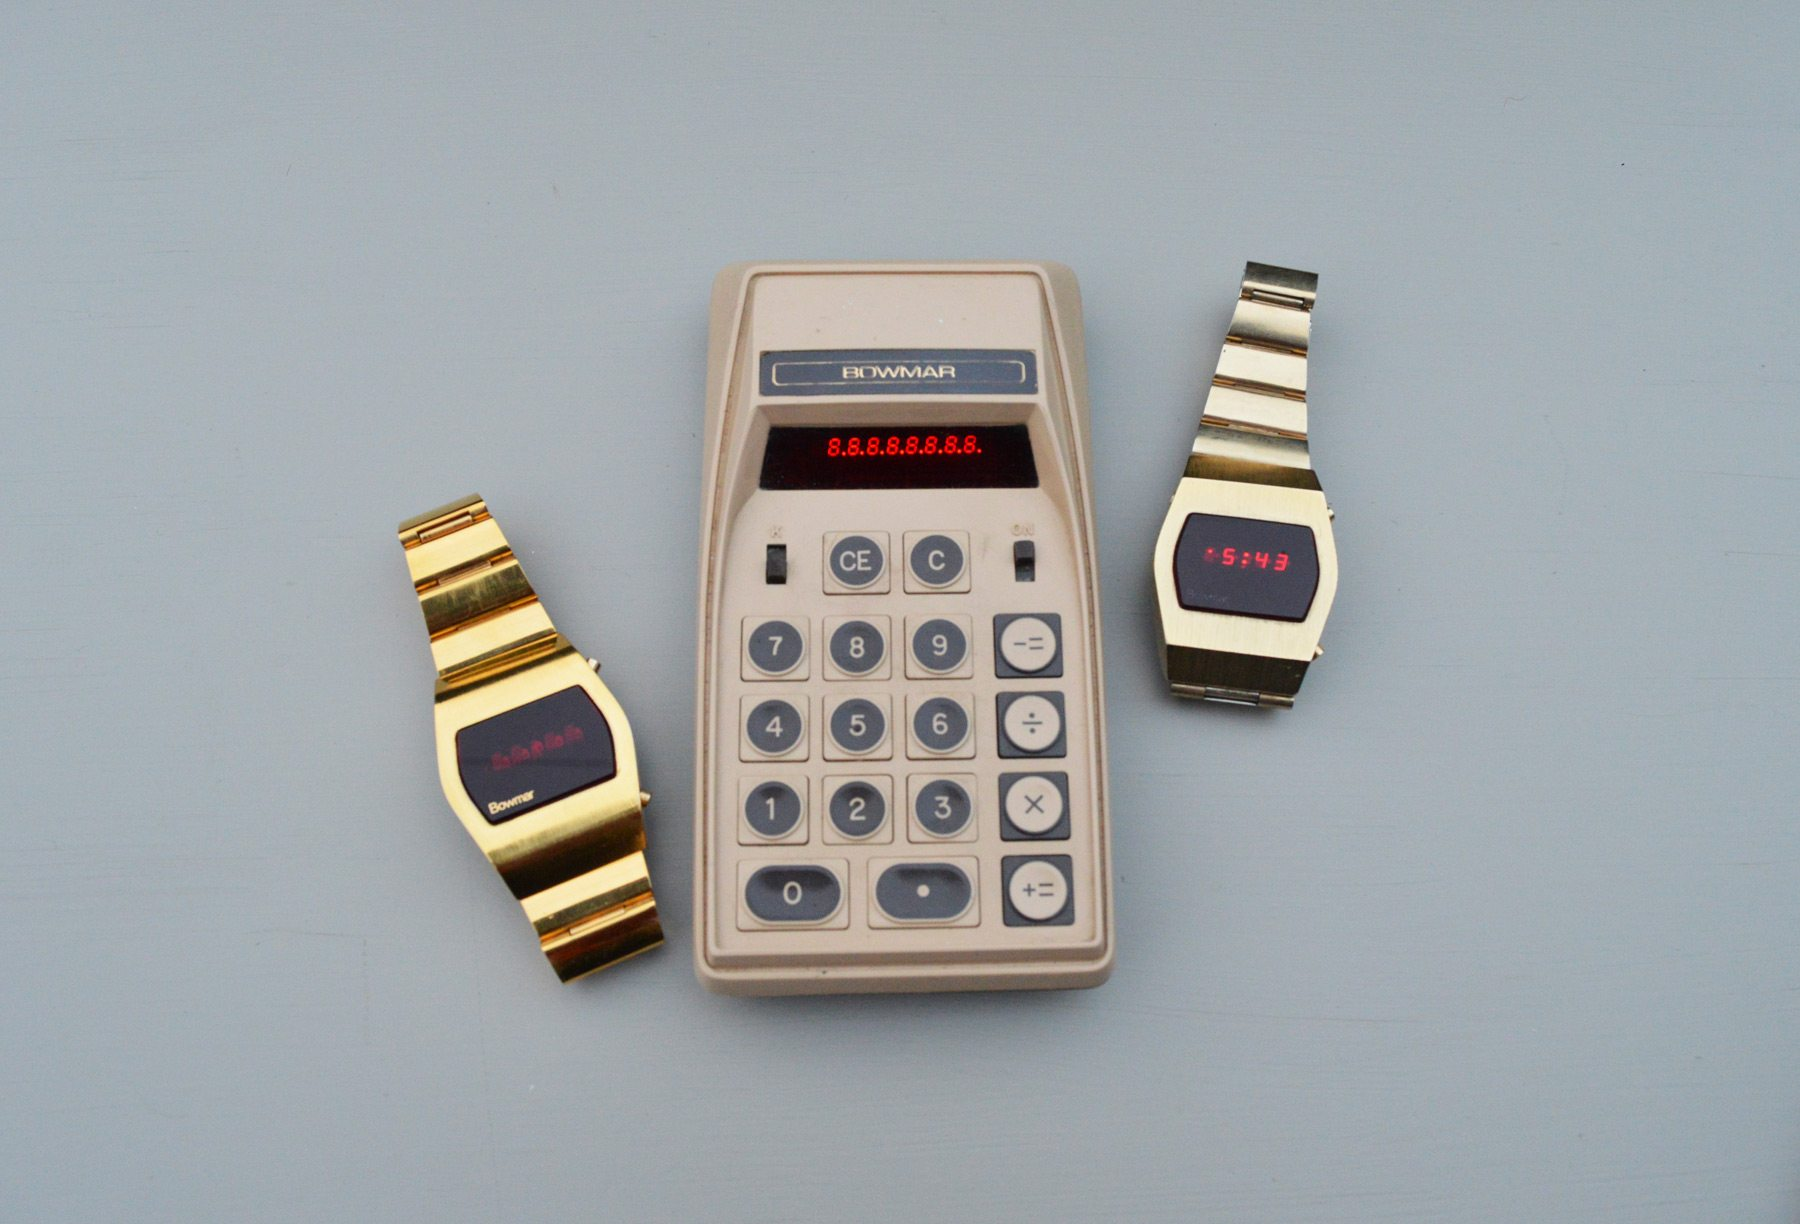 Bowmar-calculator-watches-Photo-EmilyKennedy